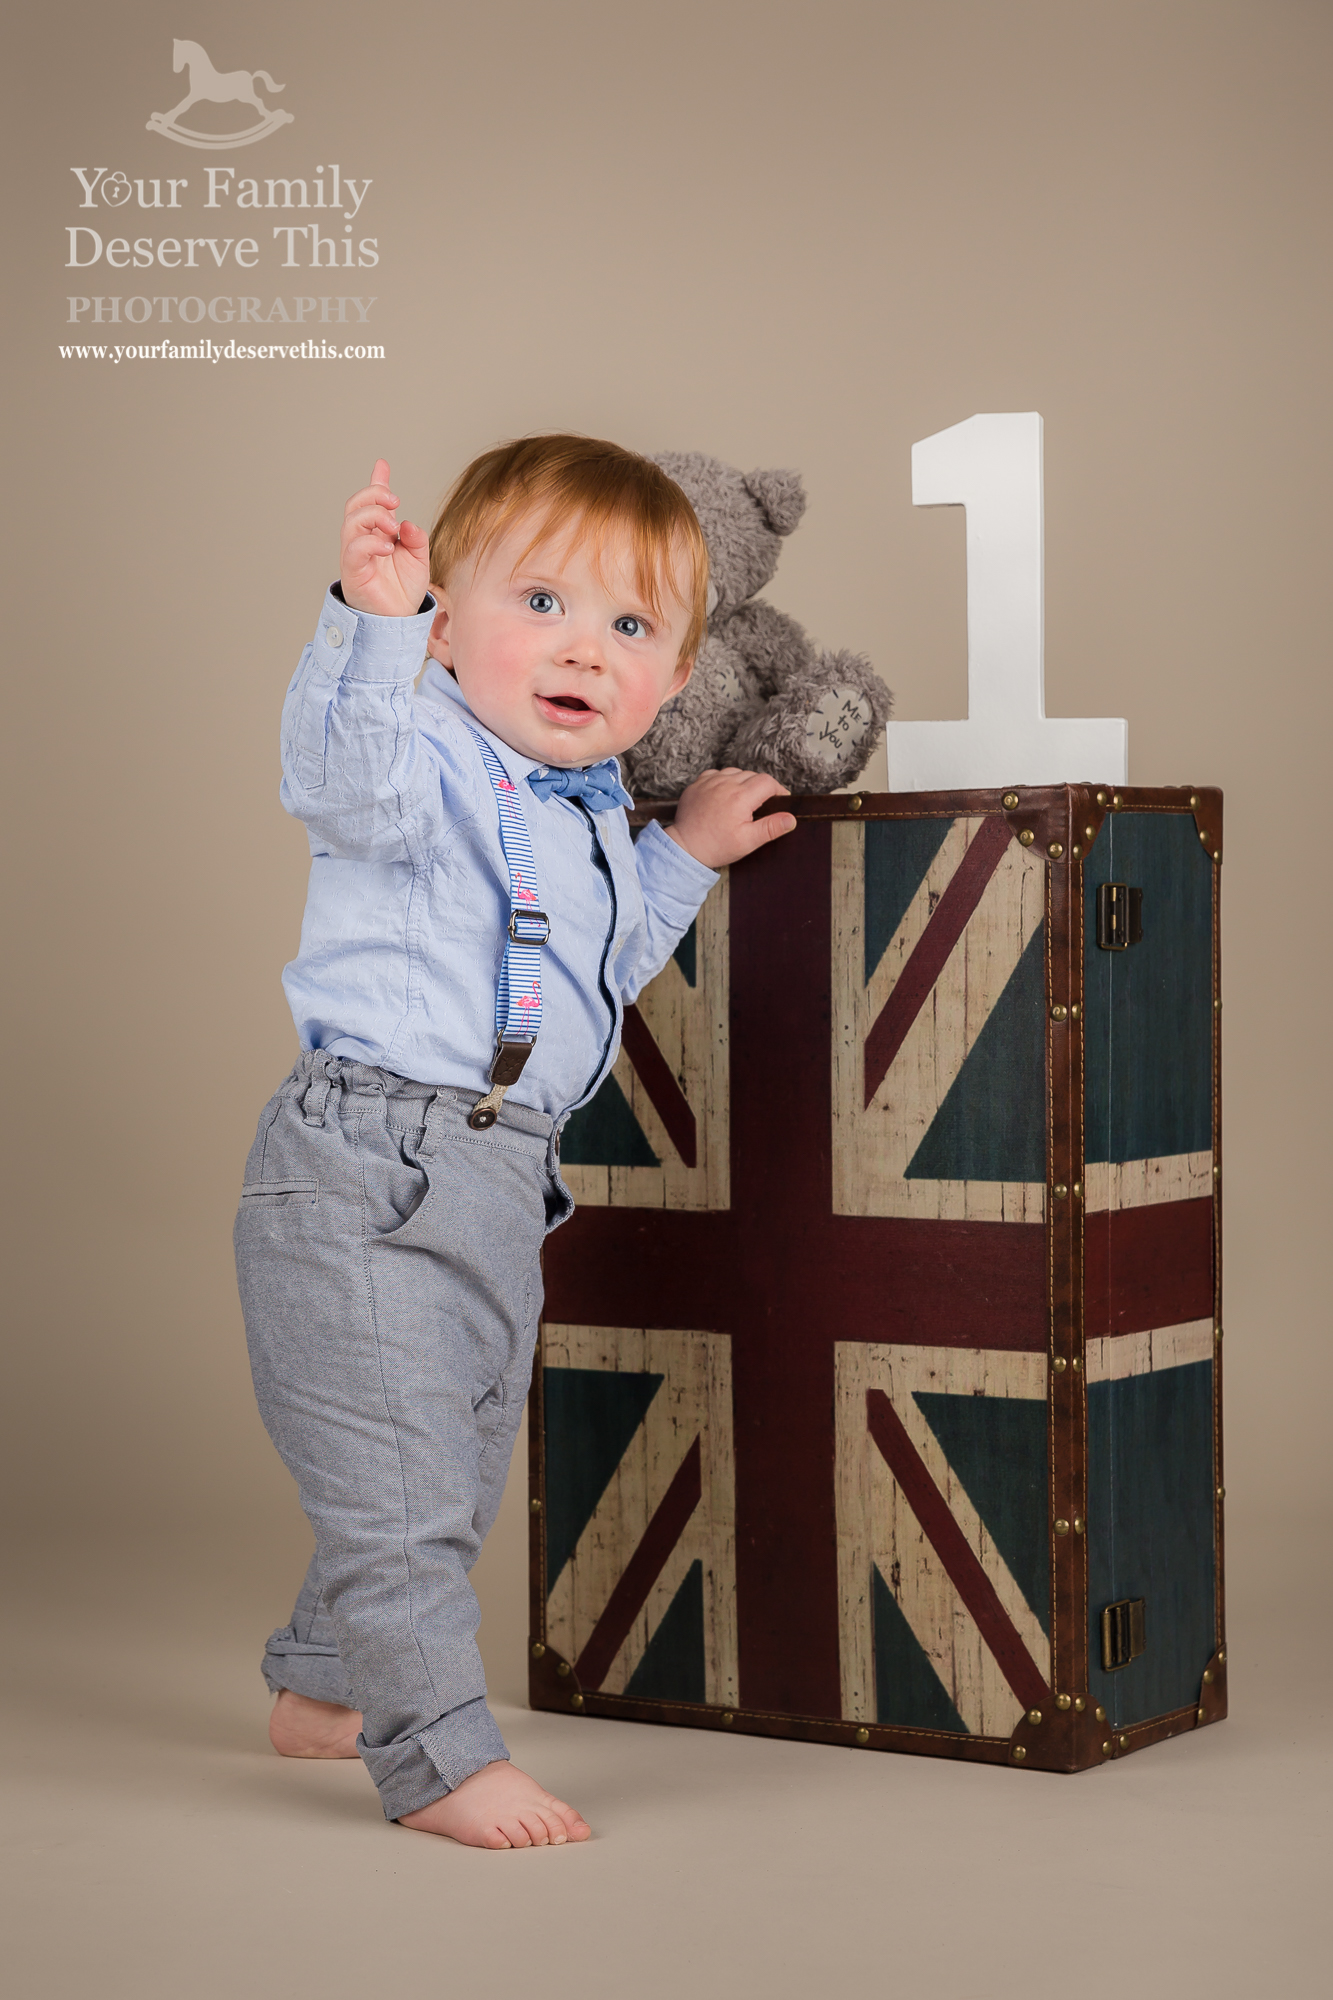 What a superstar! It's as if he is saying 'LOOK... I am 1' Family Portraits  yourfamilydeservethis.com